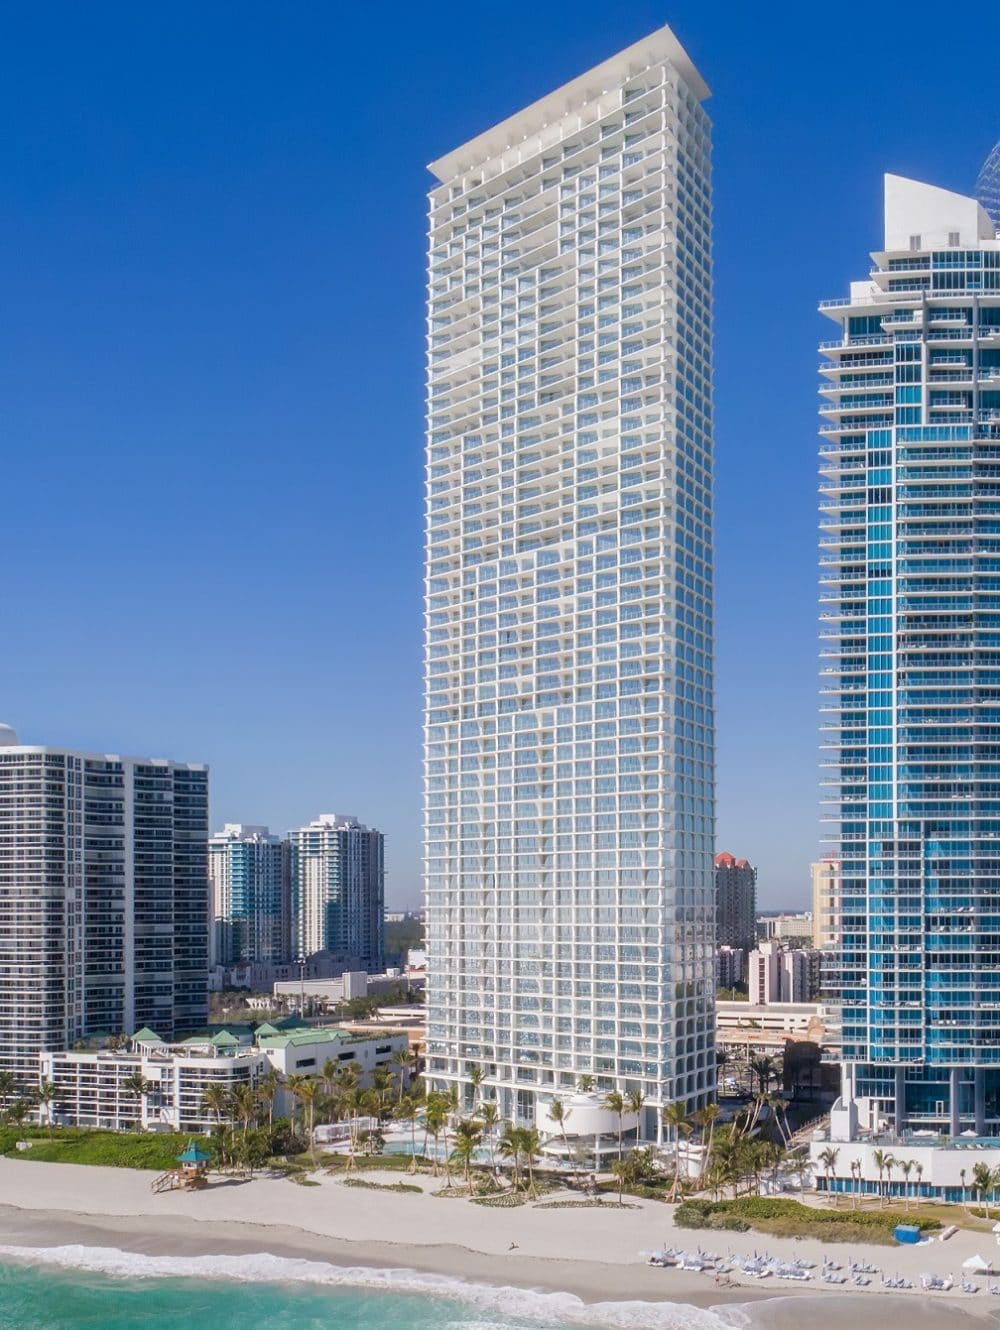 Exterior view of Jade Signature condominiums with oceanfront view. Has surrounding buildings in Sunny Isles.